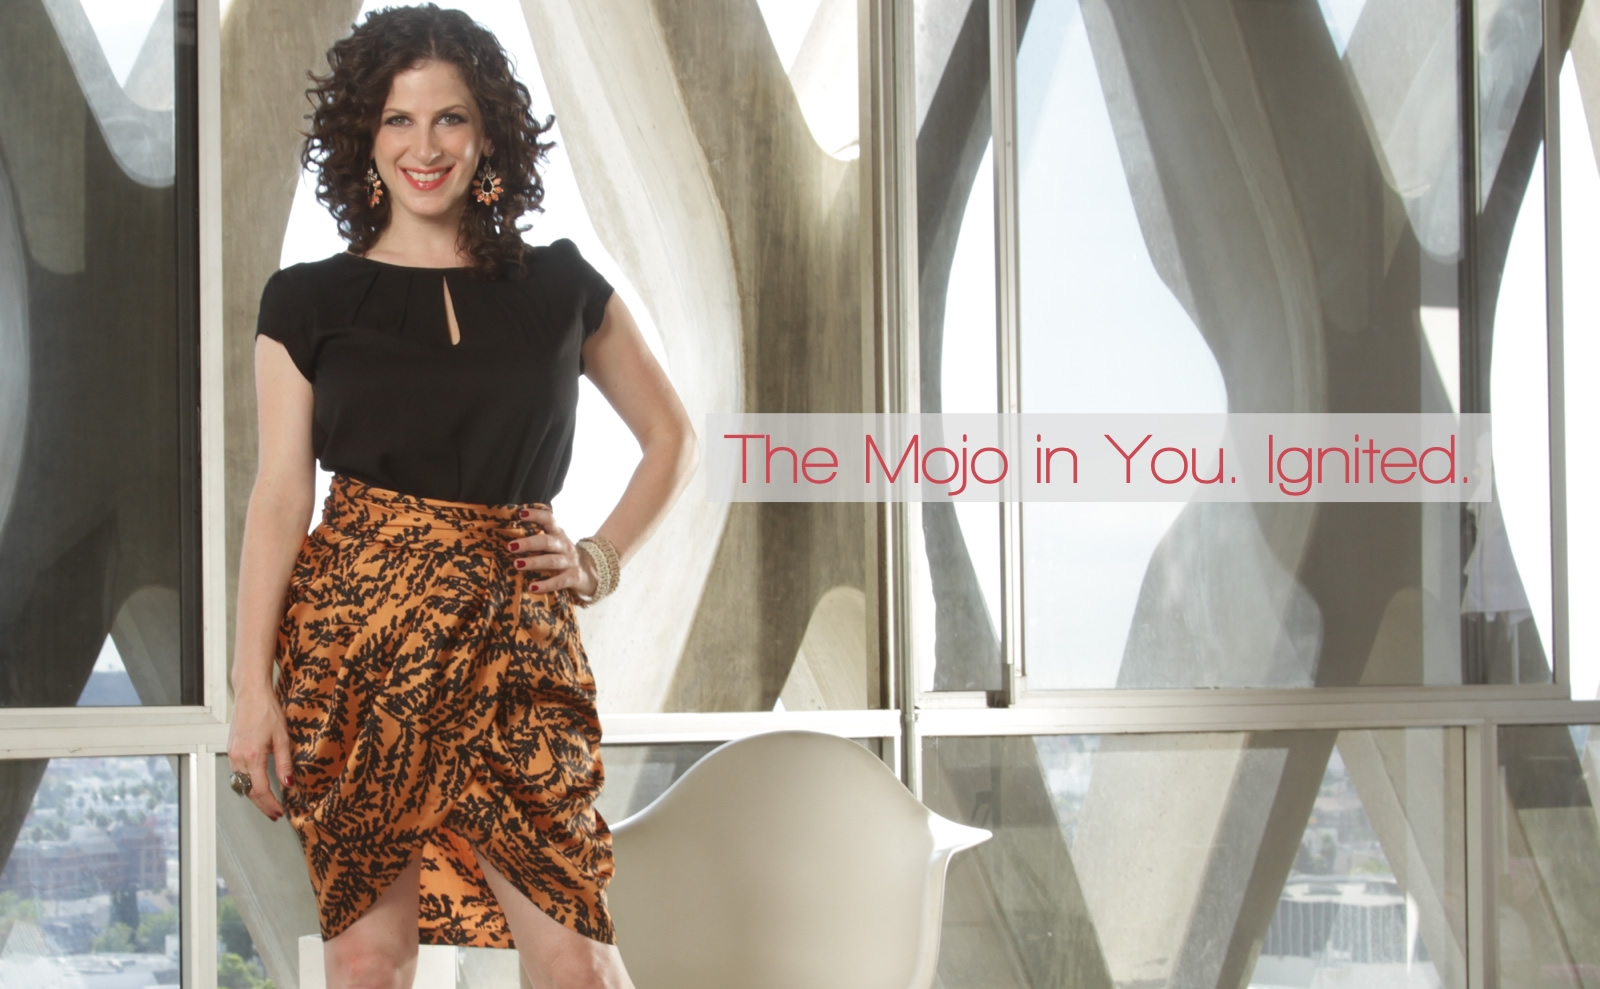 Deborah Kagan. The Mojo in You. Ignited.